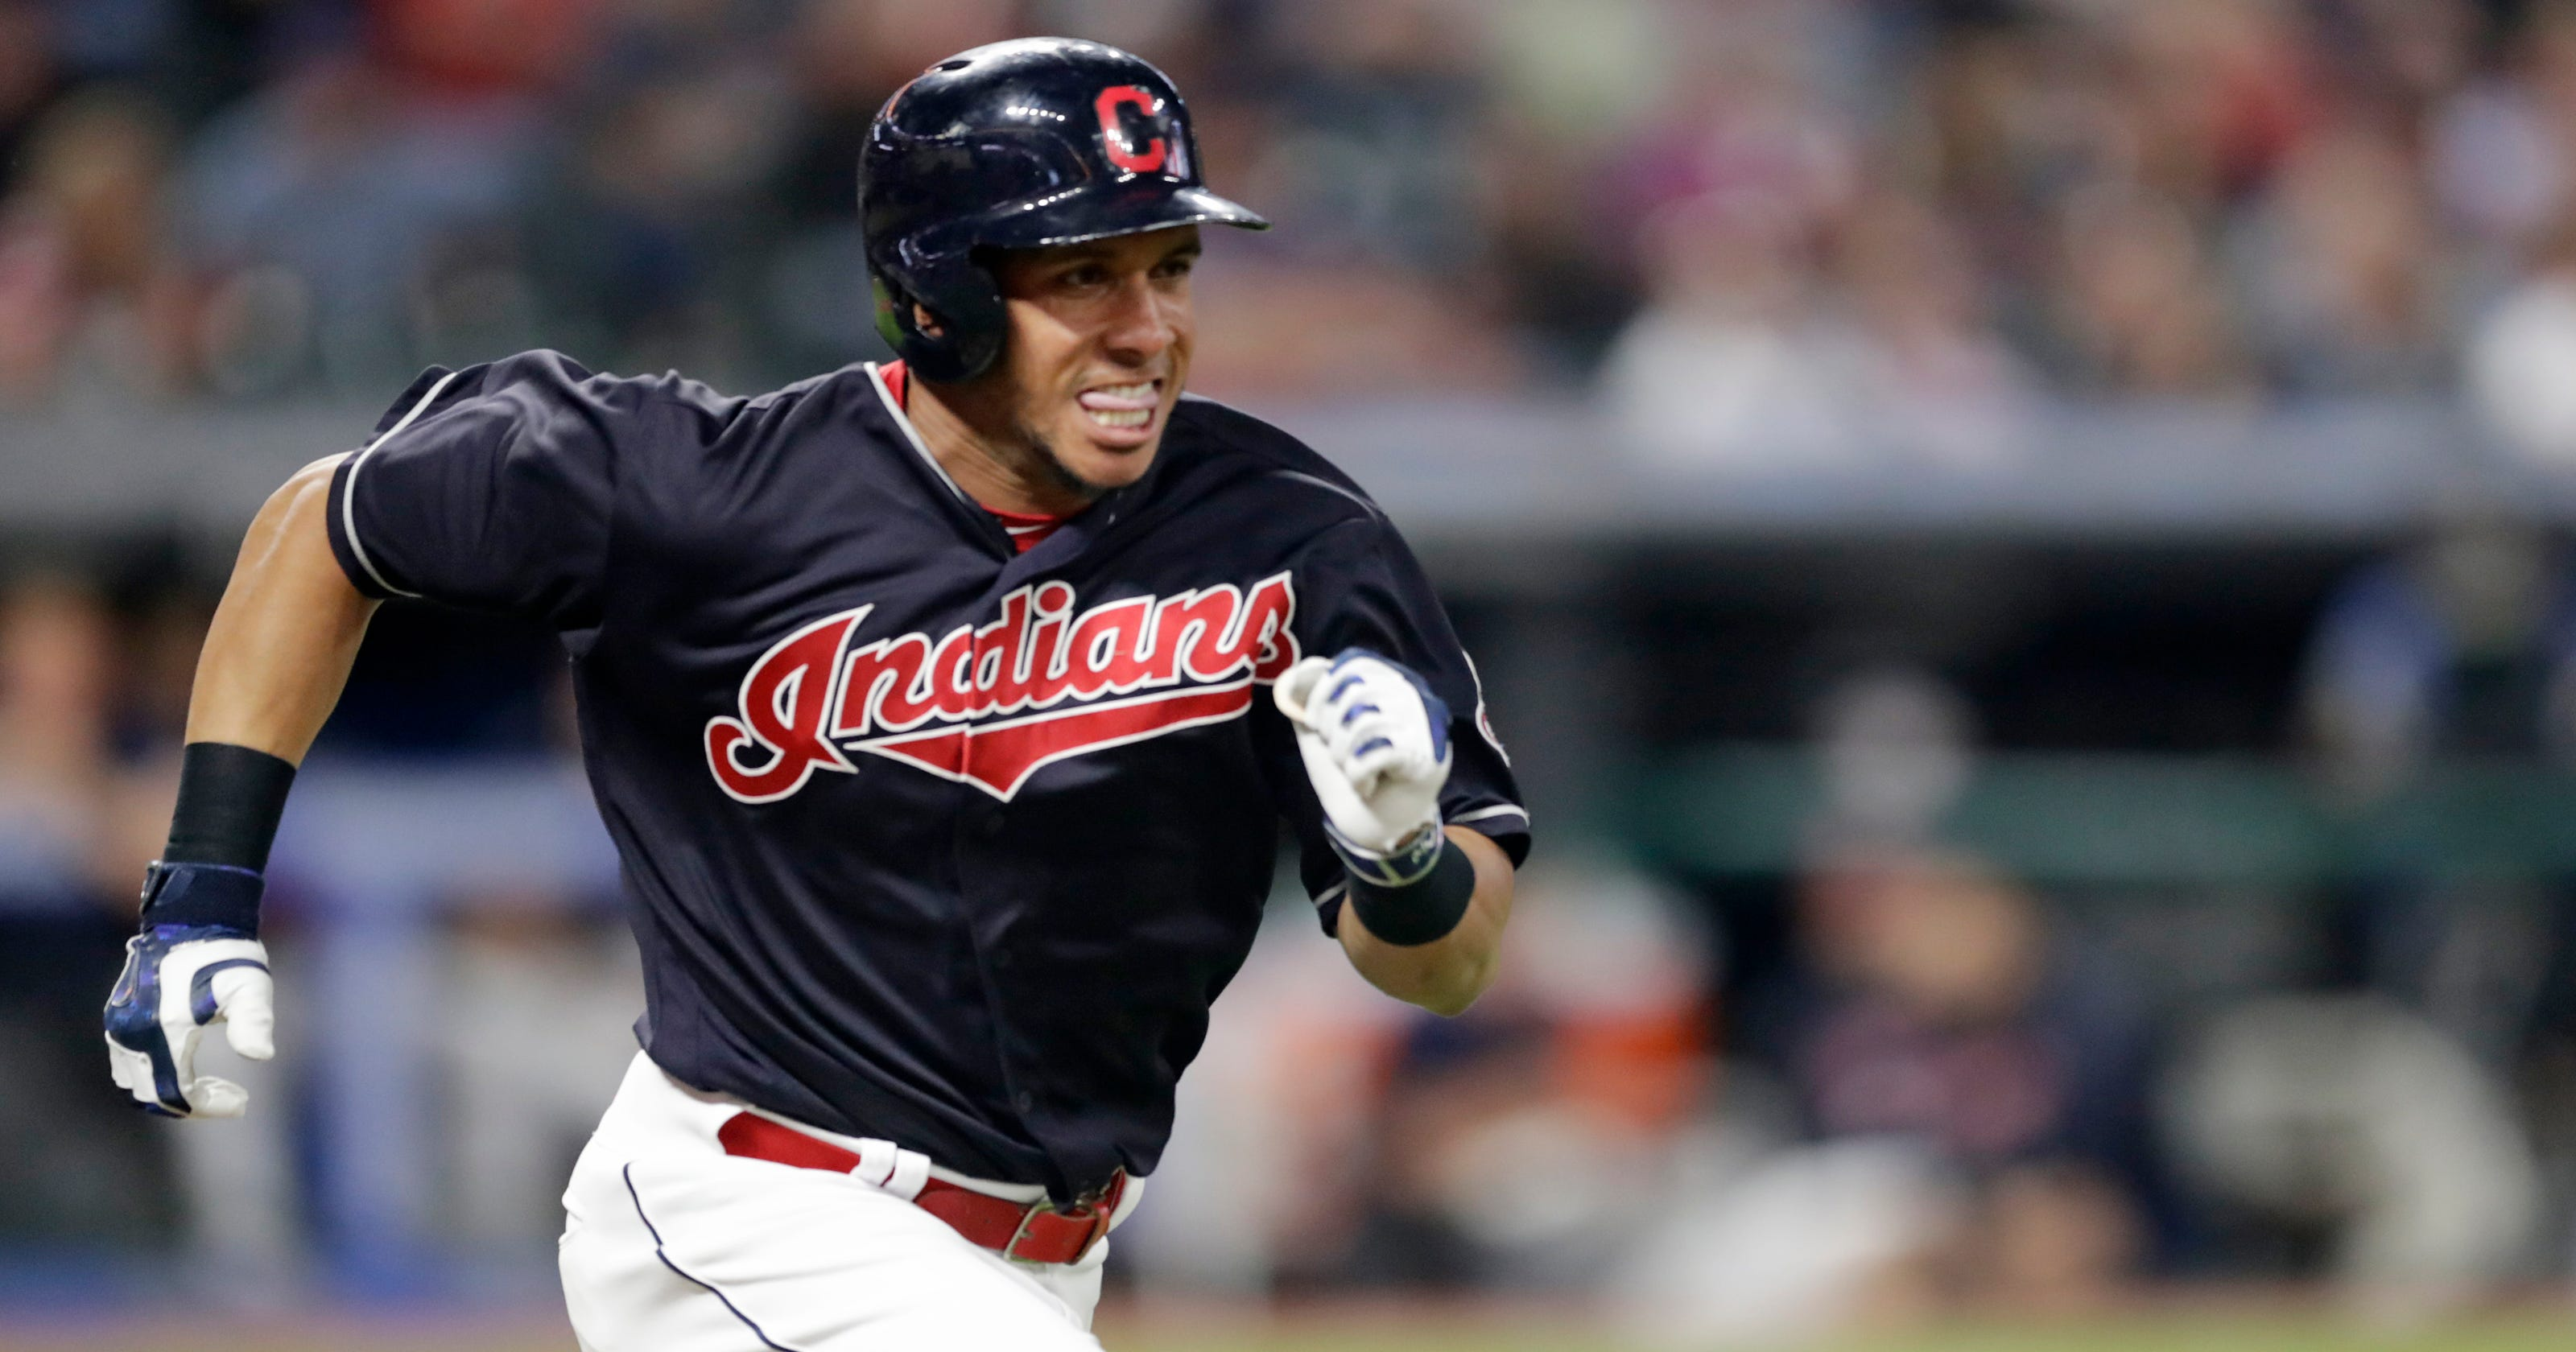 Width Height Fit Crop Ap Source Astros Agree Dou Year Deal Michael Brantley